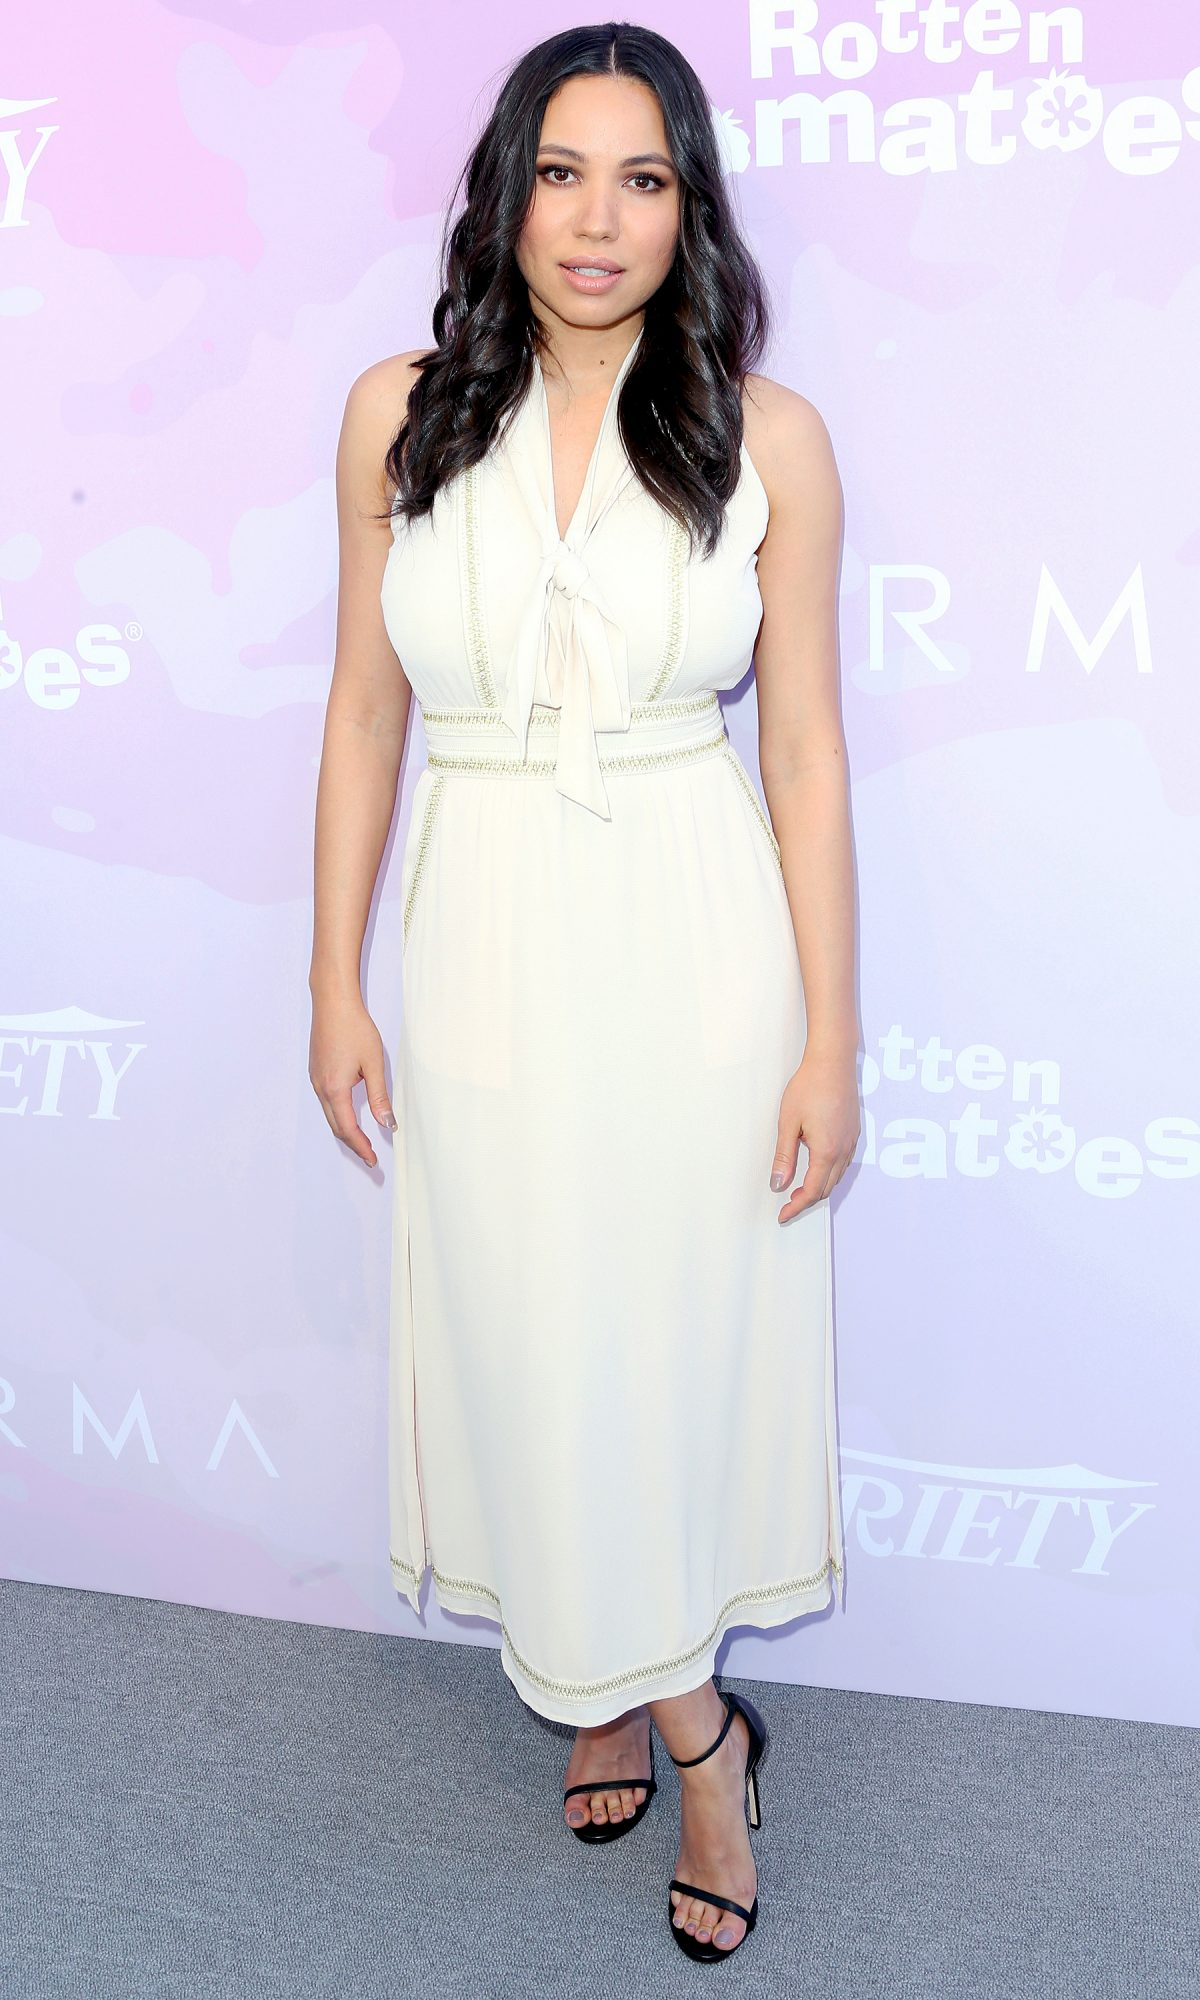 Variety's Celebratory Brunch Event For Awards Nominees Benefitting Motion Picture Television Fund - Arrivals